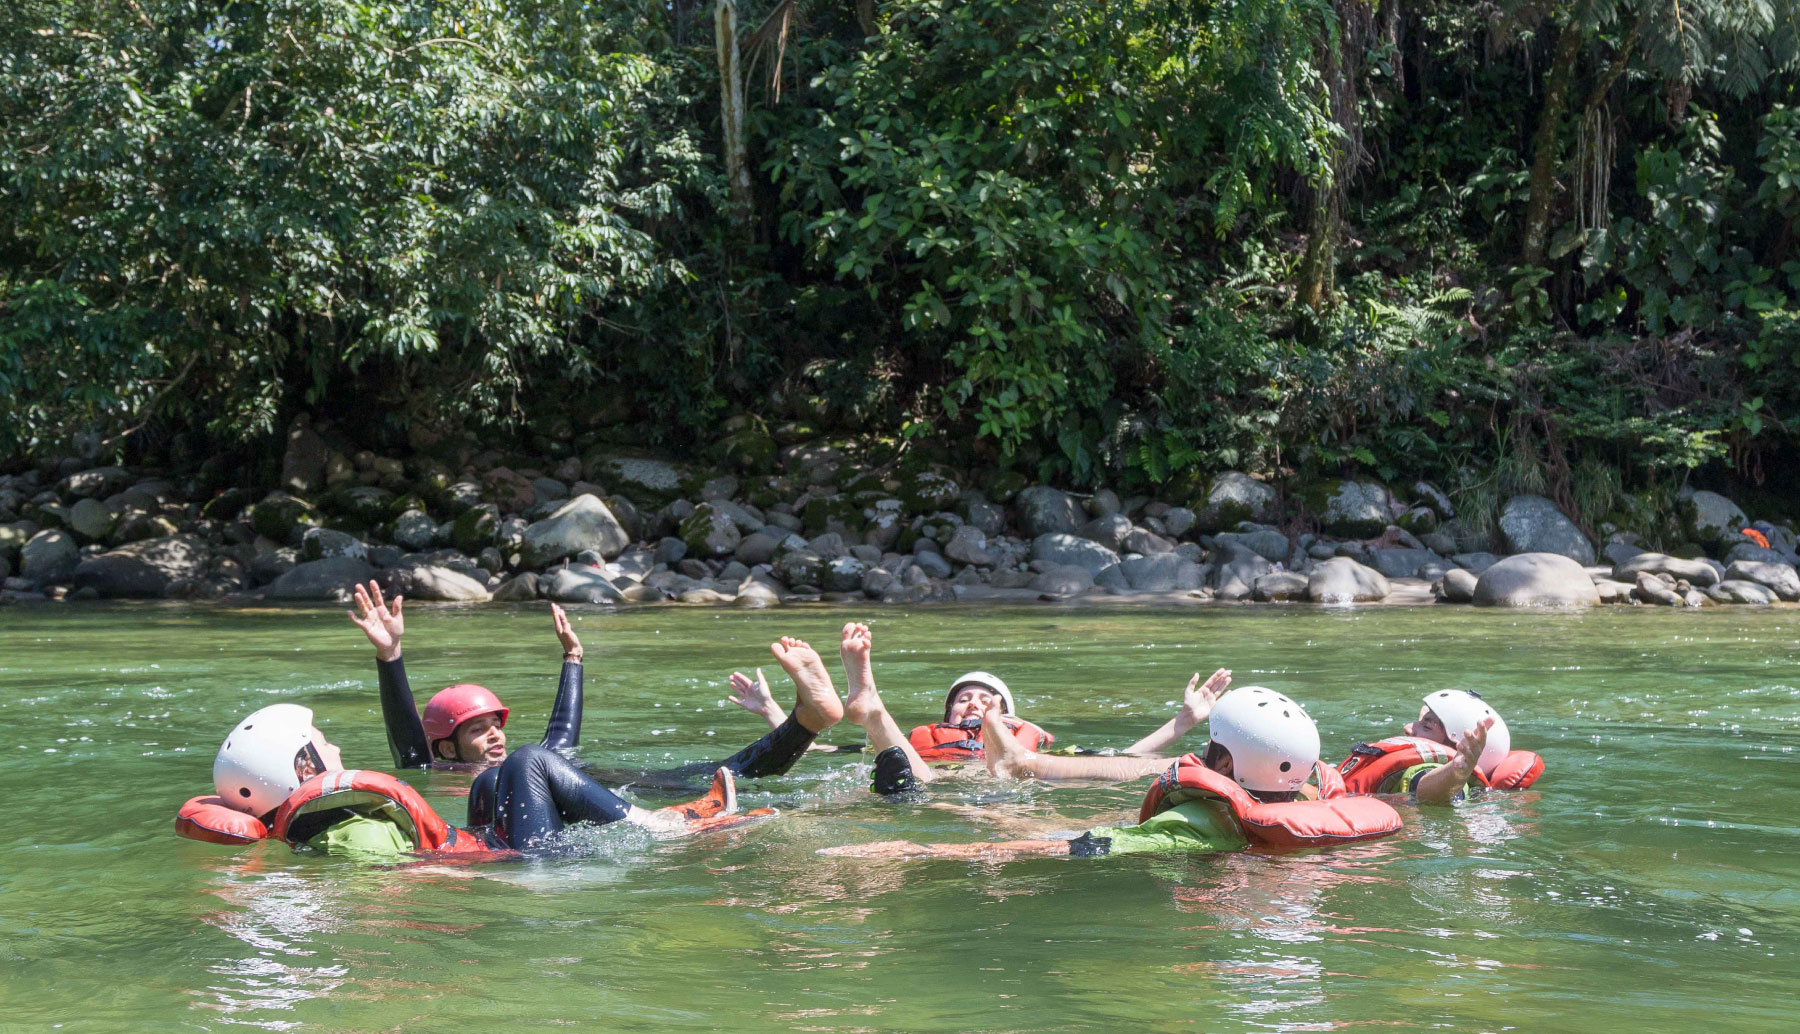 People in a river floating and swimming